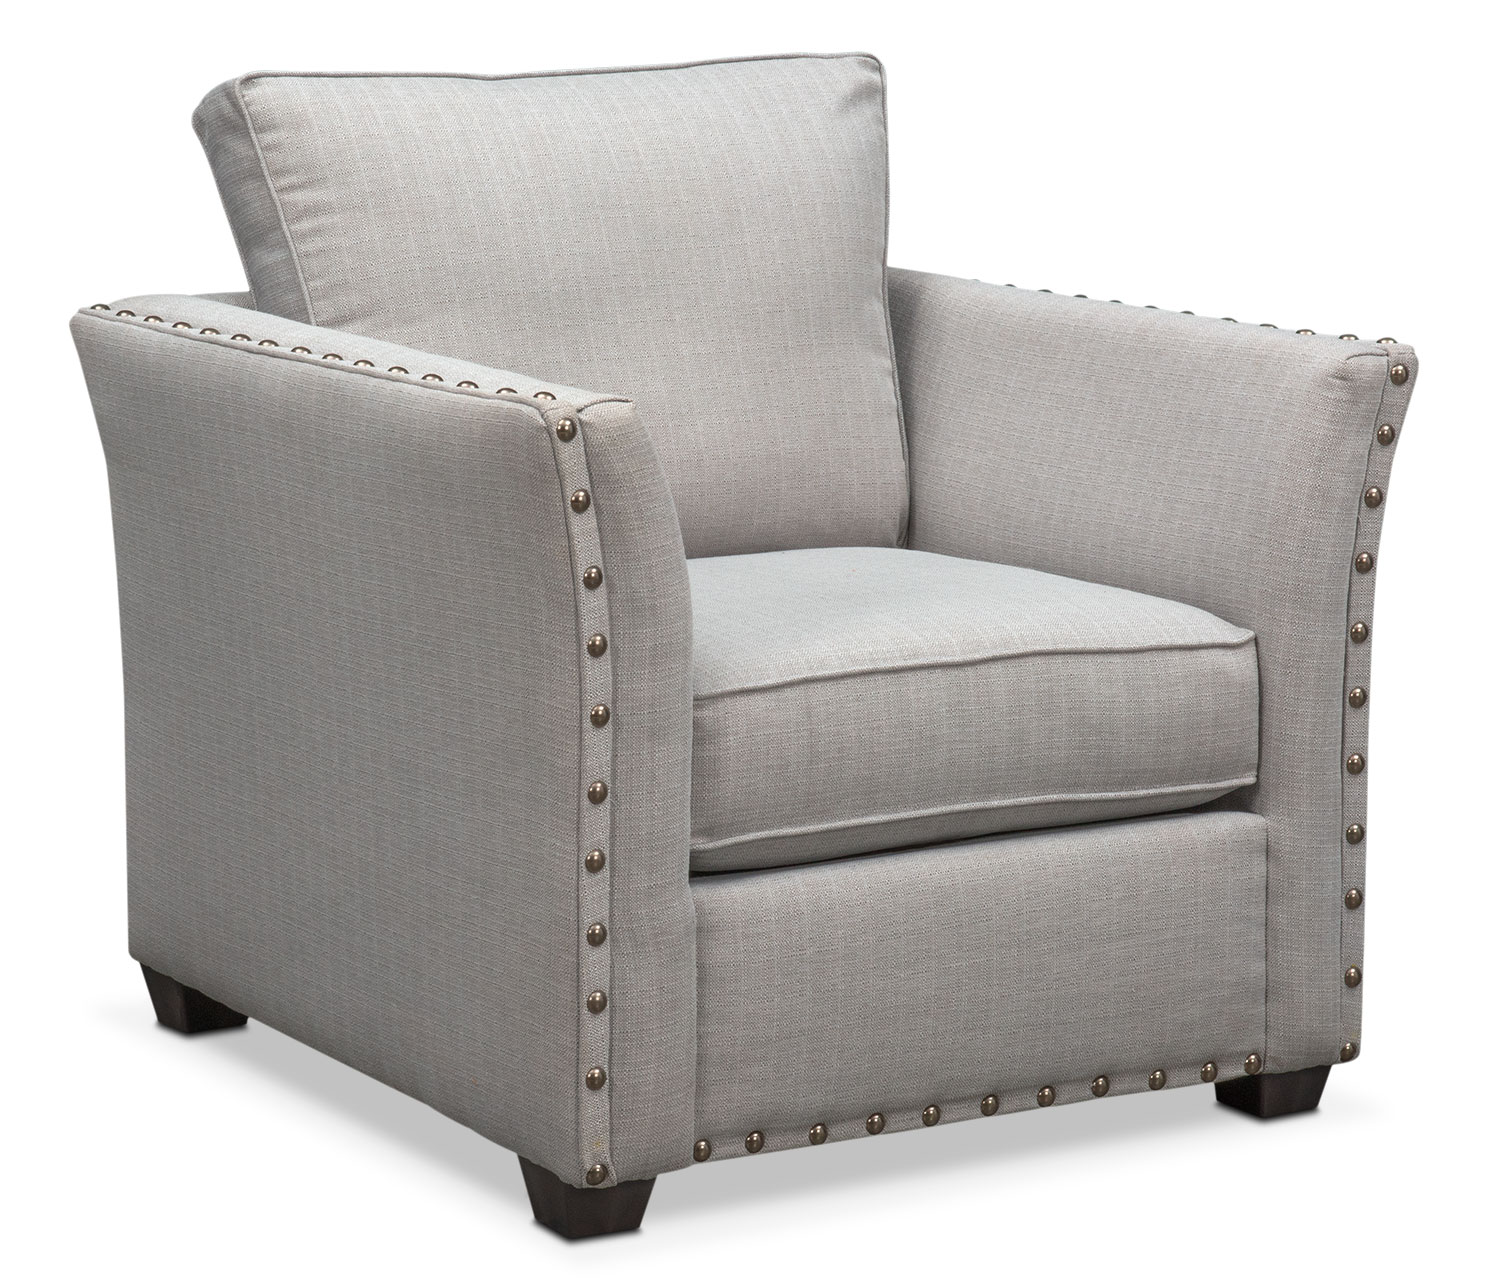 Mckenna 2 Piece Sectional and Chair Pewter